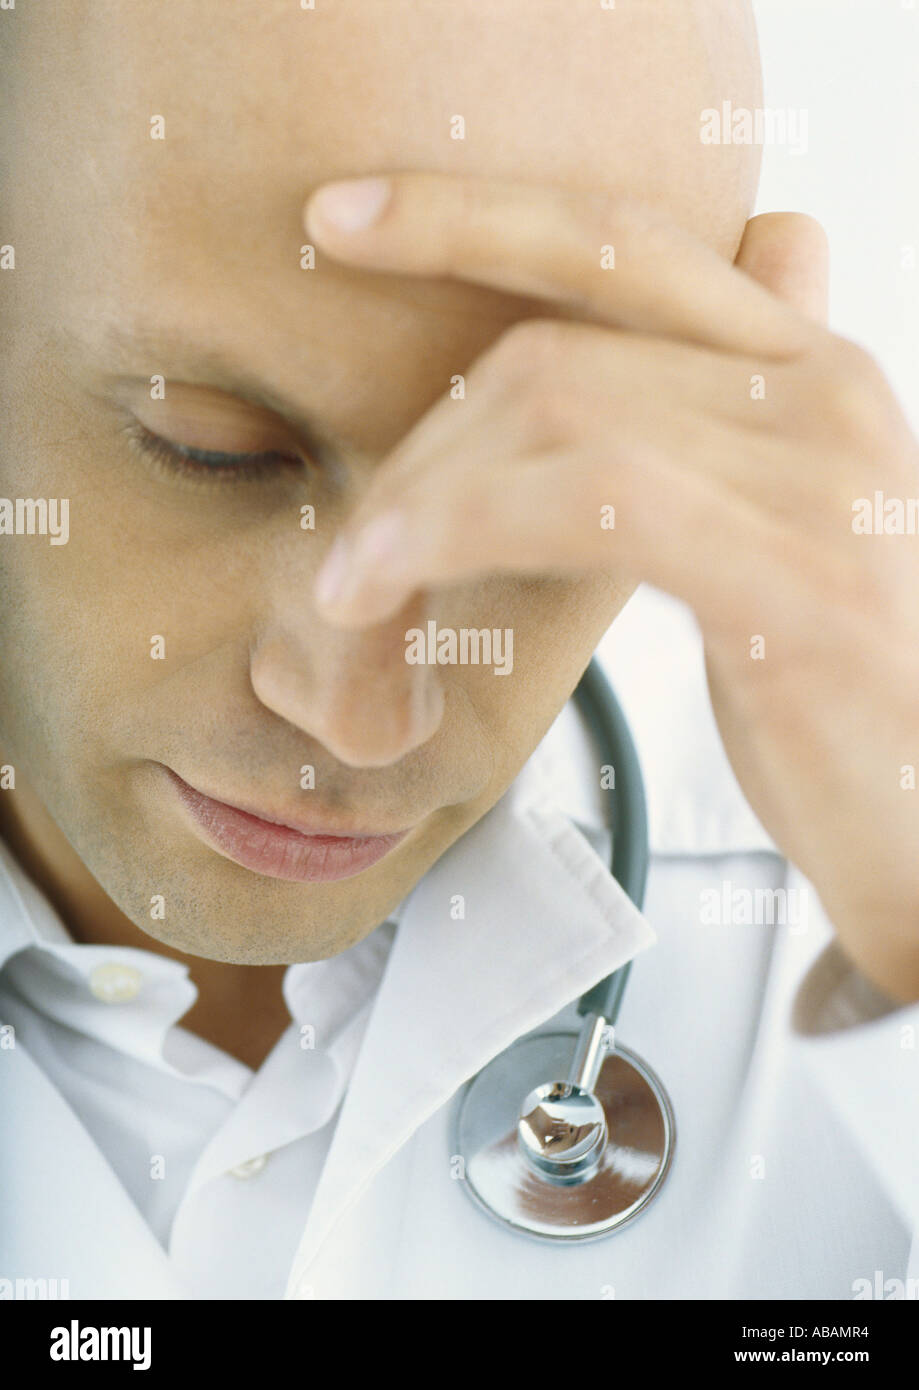 Doctor holding head and looking down - Stock Image